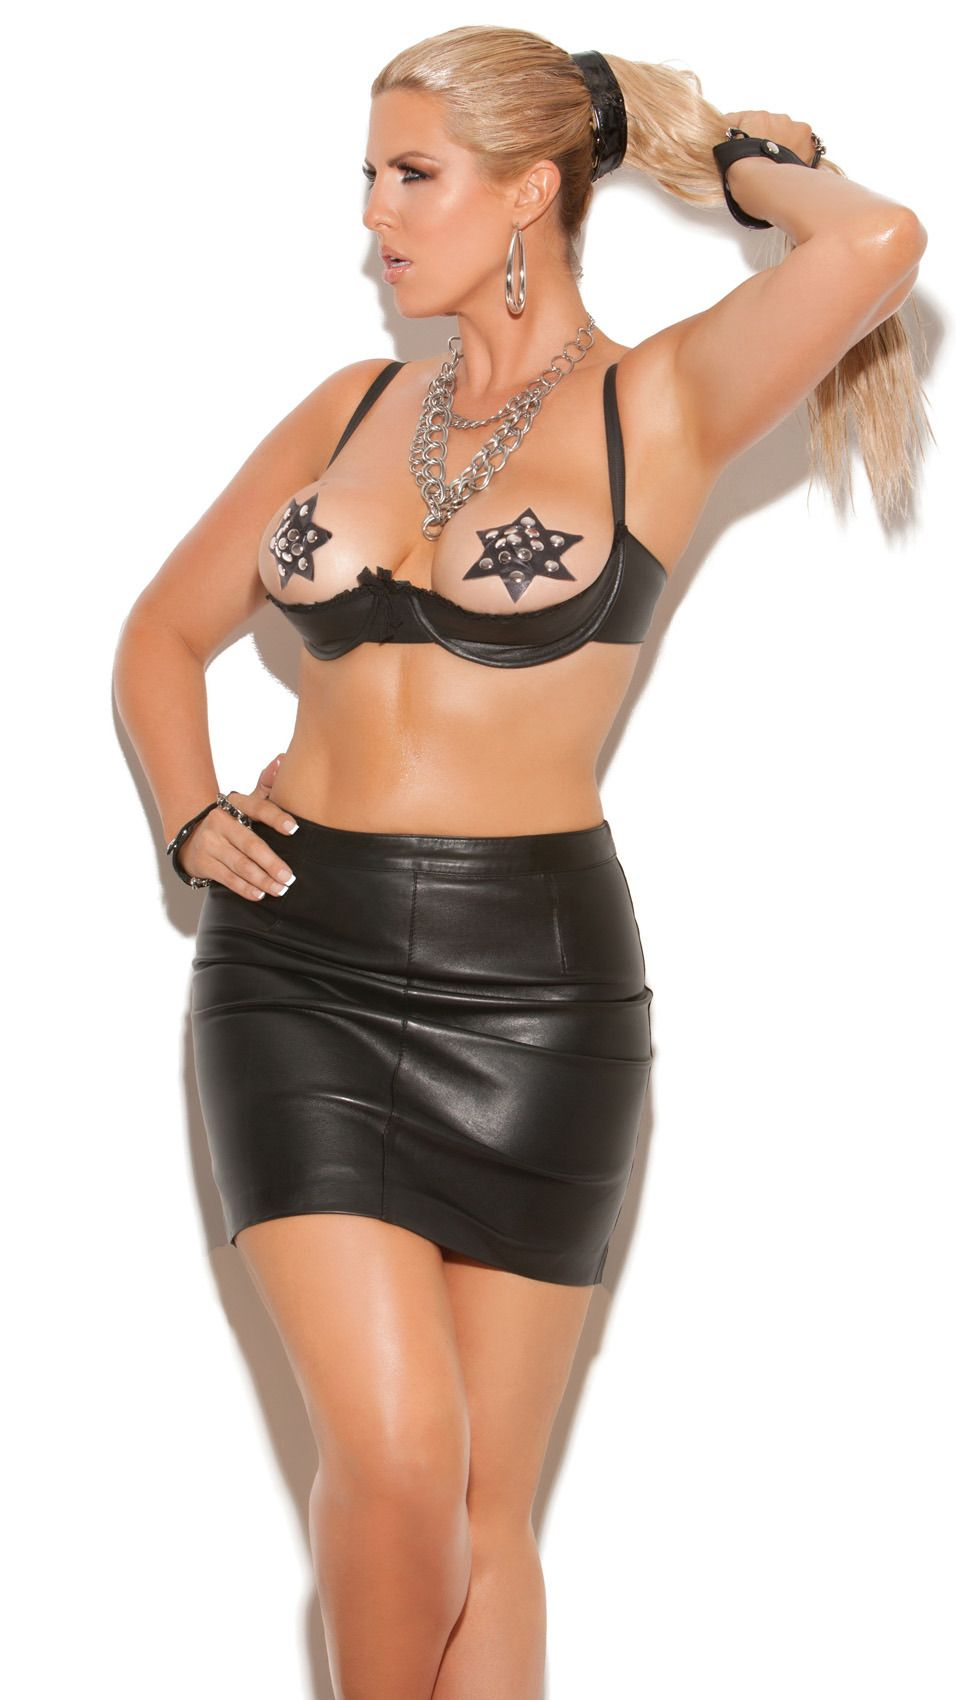 b9c3f1518fa Black Leather Open Cup Bra thesexiestlingerie.com  leatherbra ...